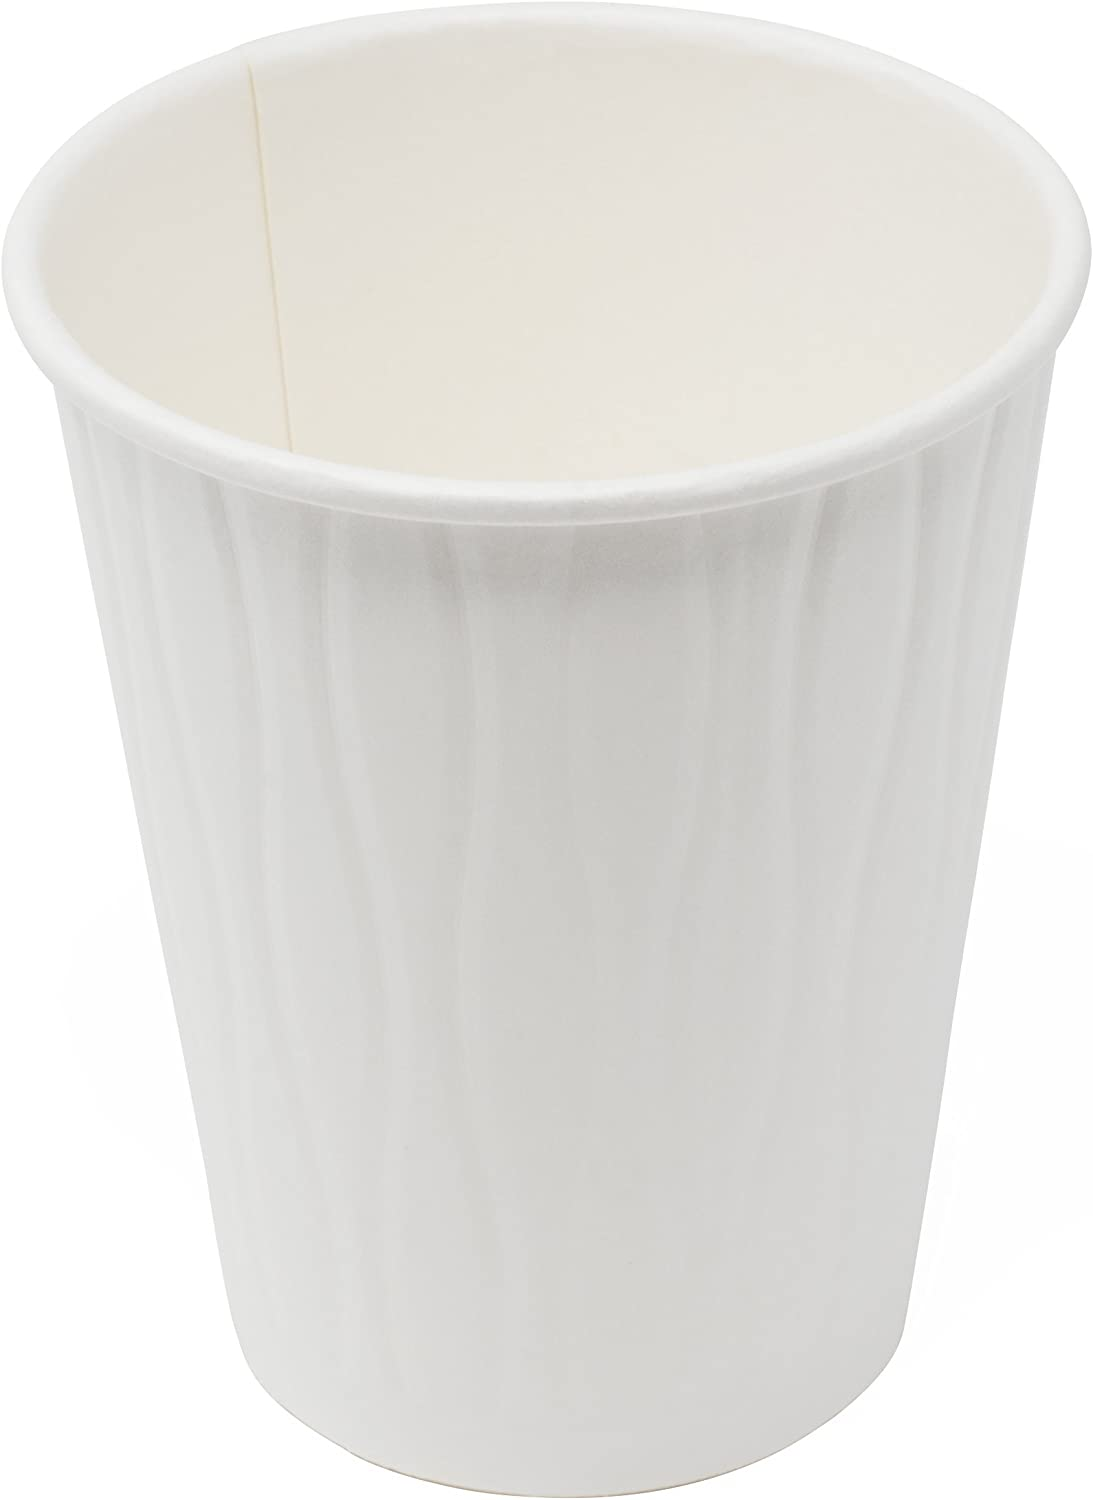 Simply Deliver 12 oz Paper Hot Cup, Double-Wall, Poly-Coated, White, 1000-Count